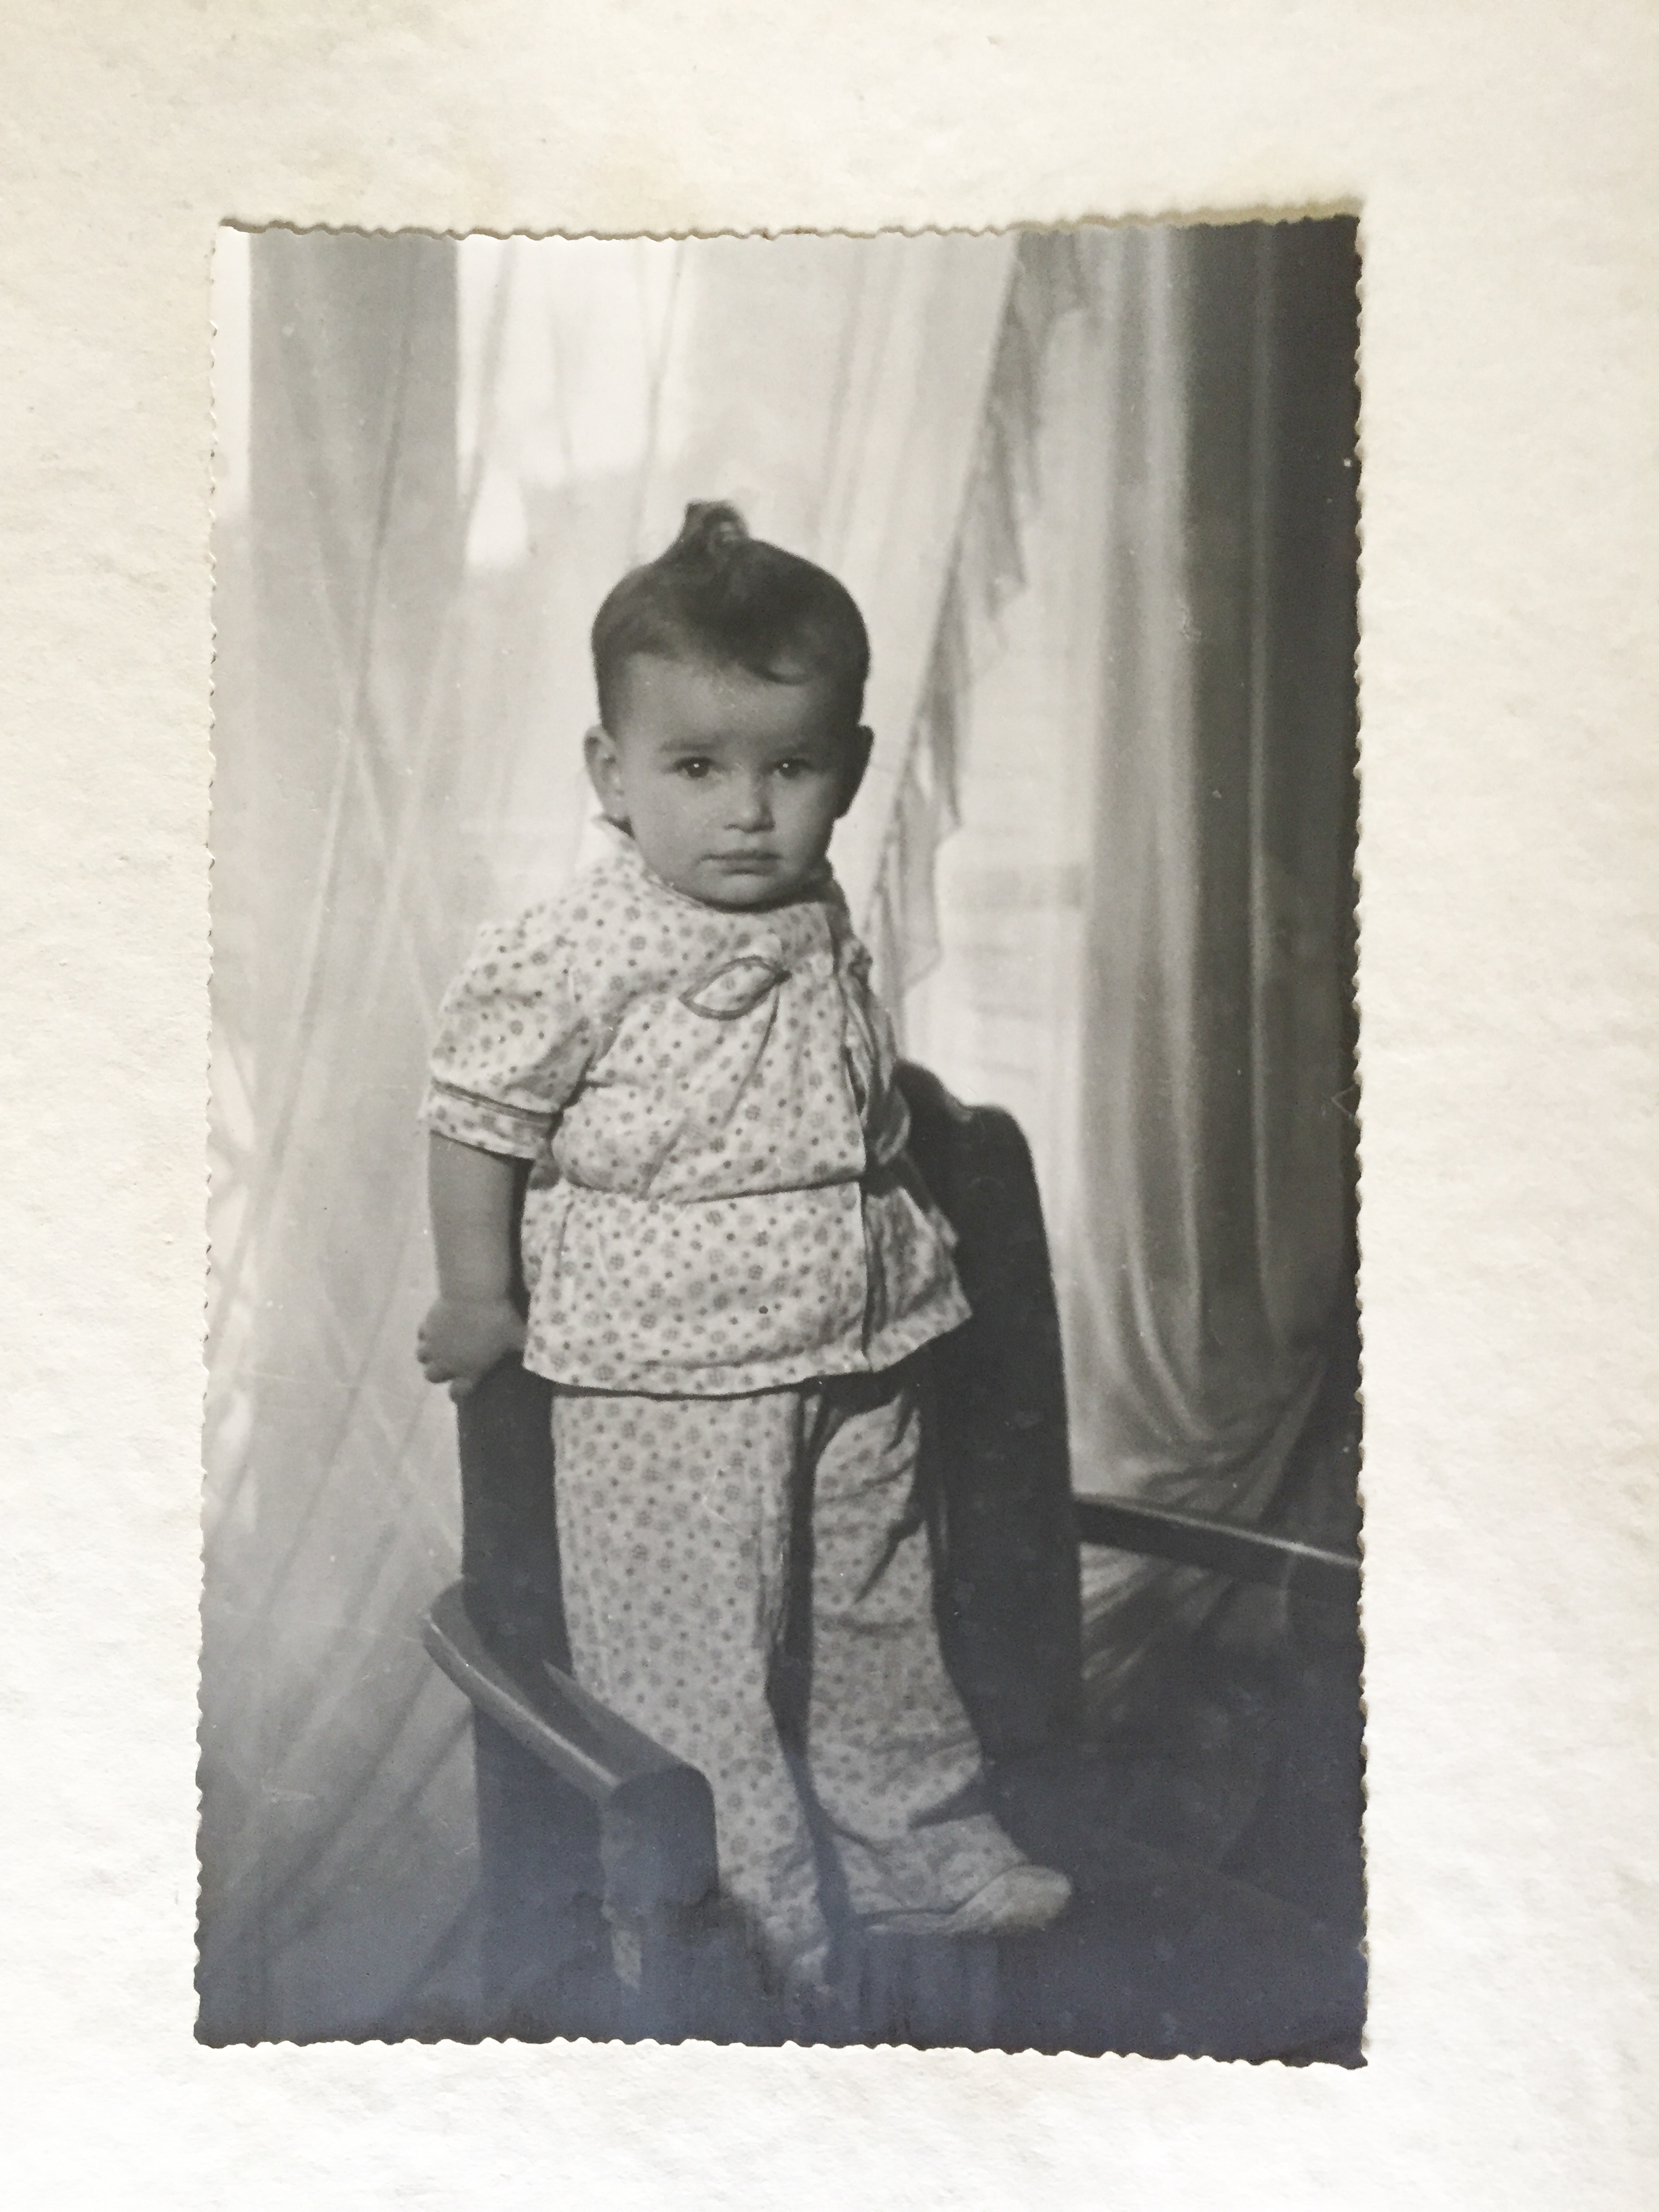 Janine Janowski pictued at 1-year-old in her home in Paris, France.(Photo:Muriel Hasbun archive.)